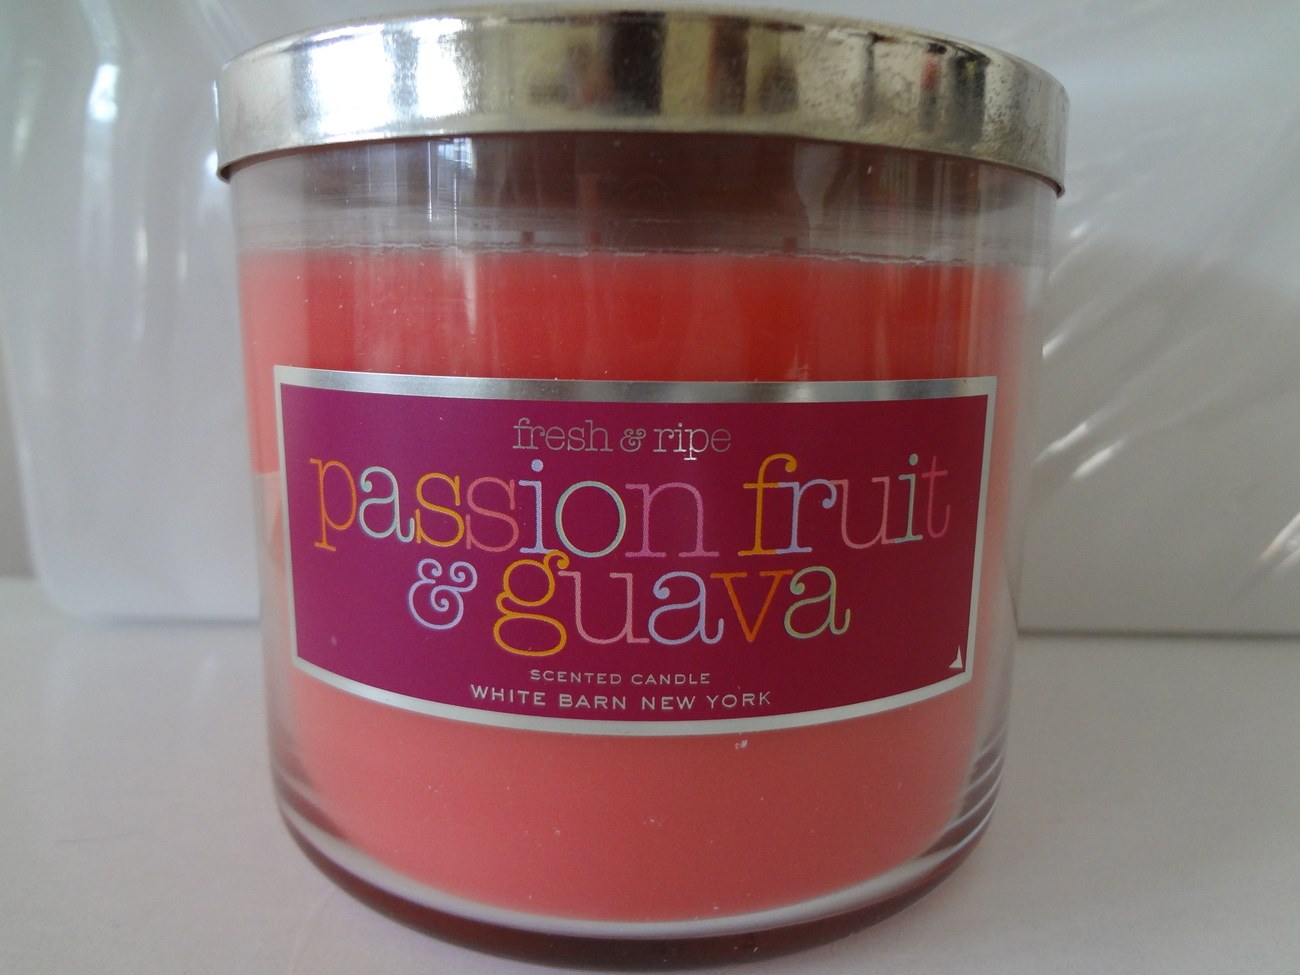 Bath & Body Works PASSION FRUIT & GUAVA Scented Candle 14.5 oz / 411 g